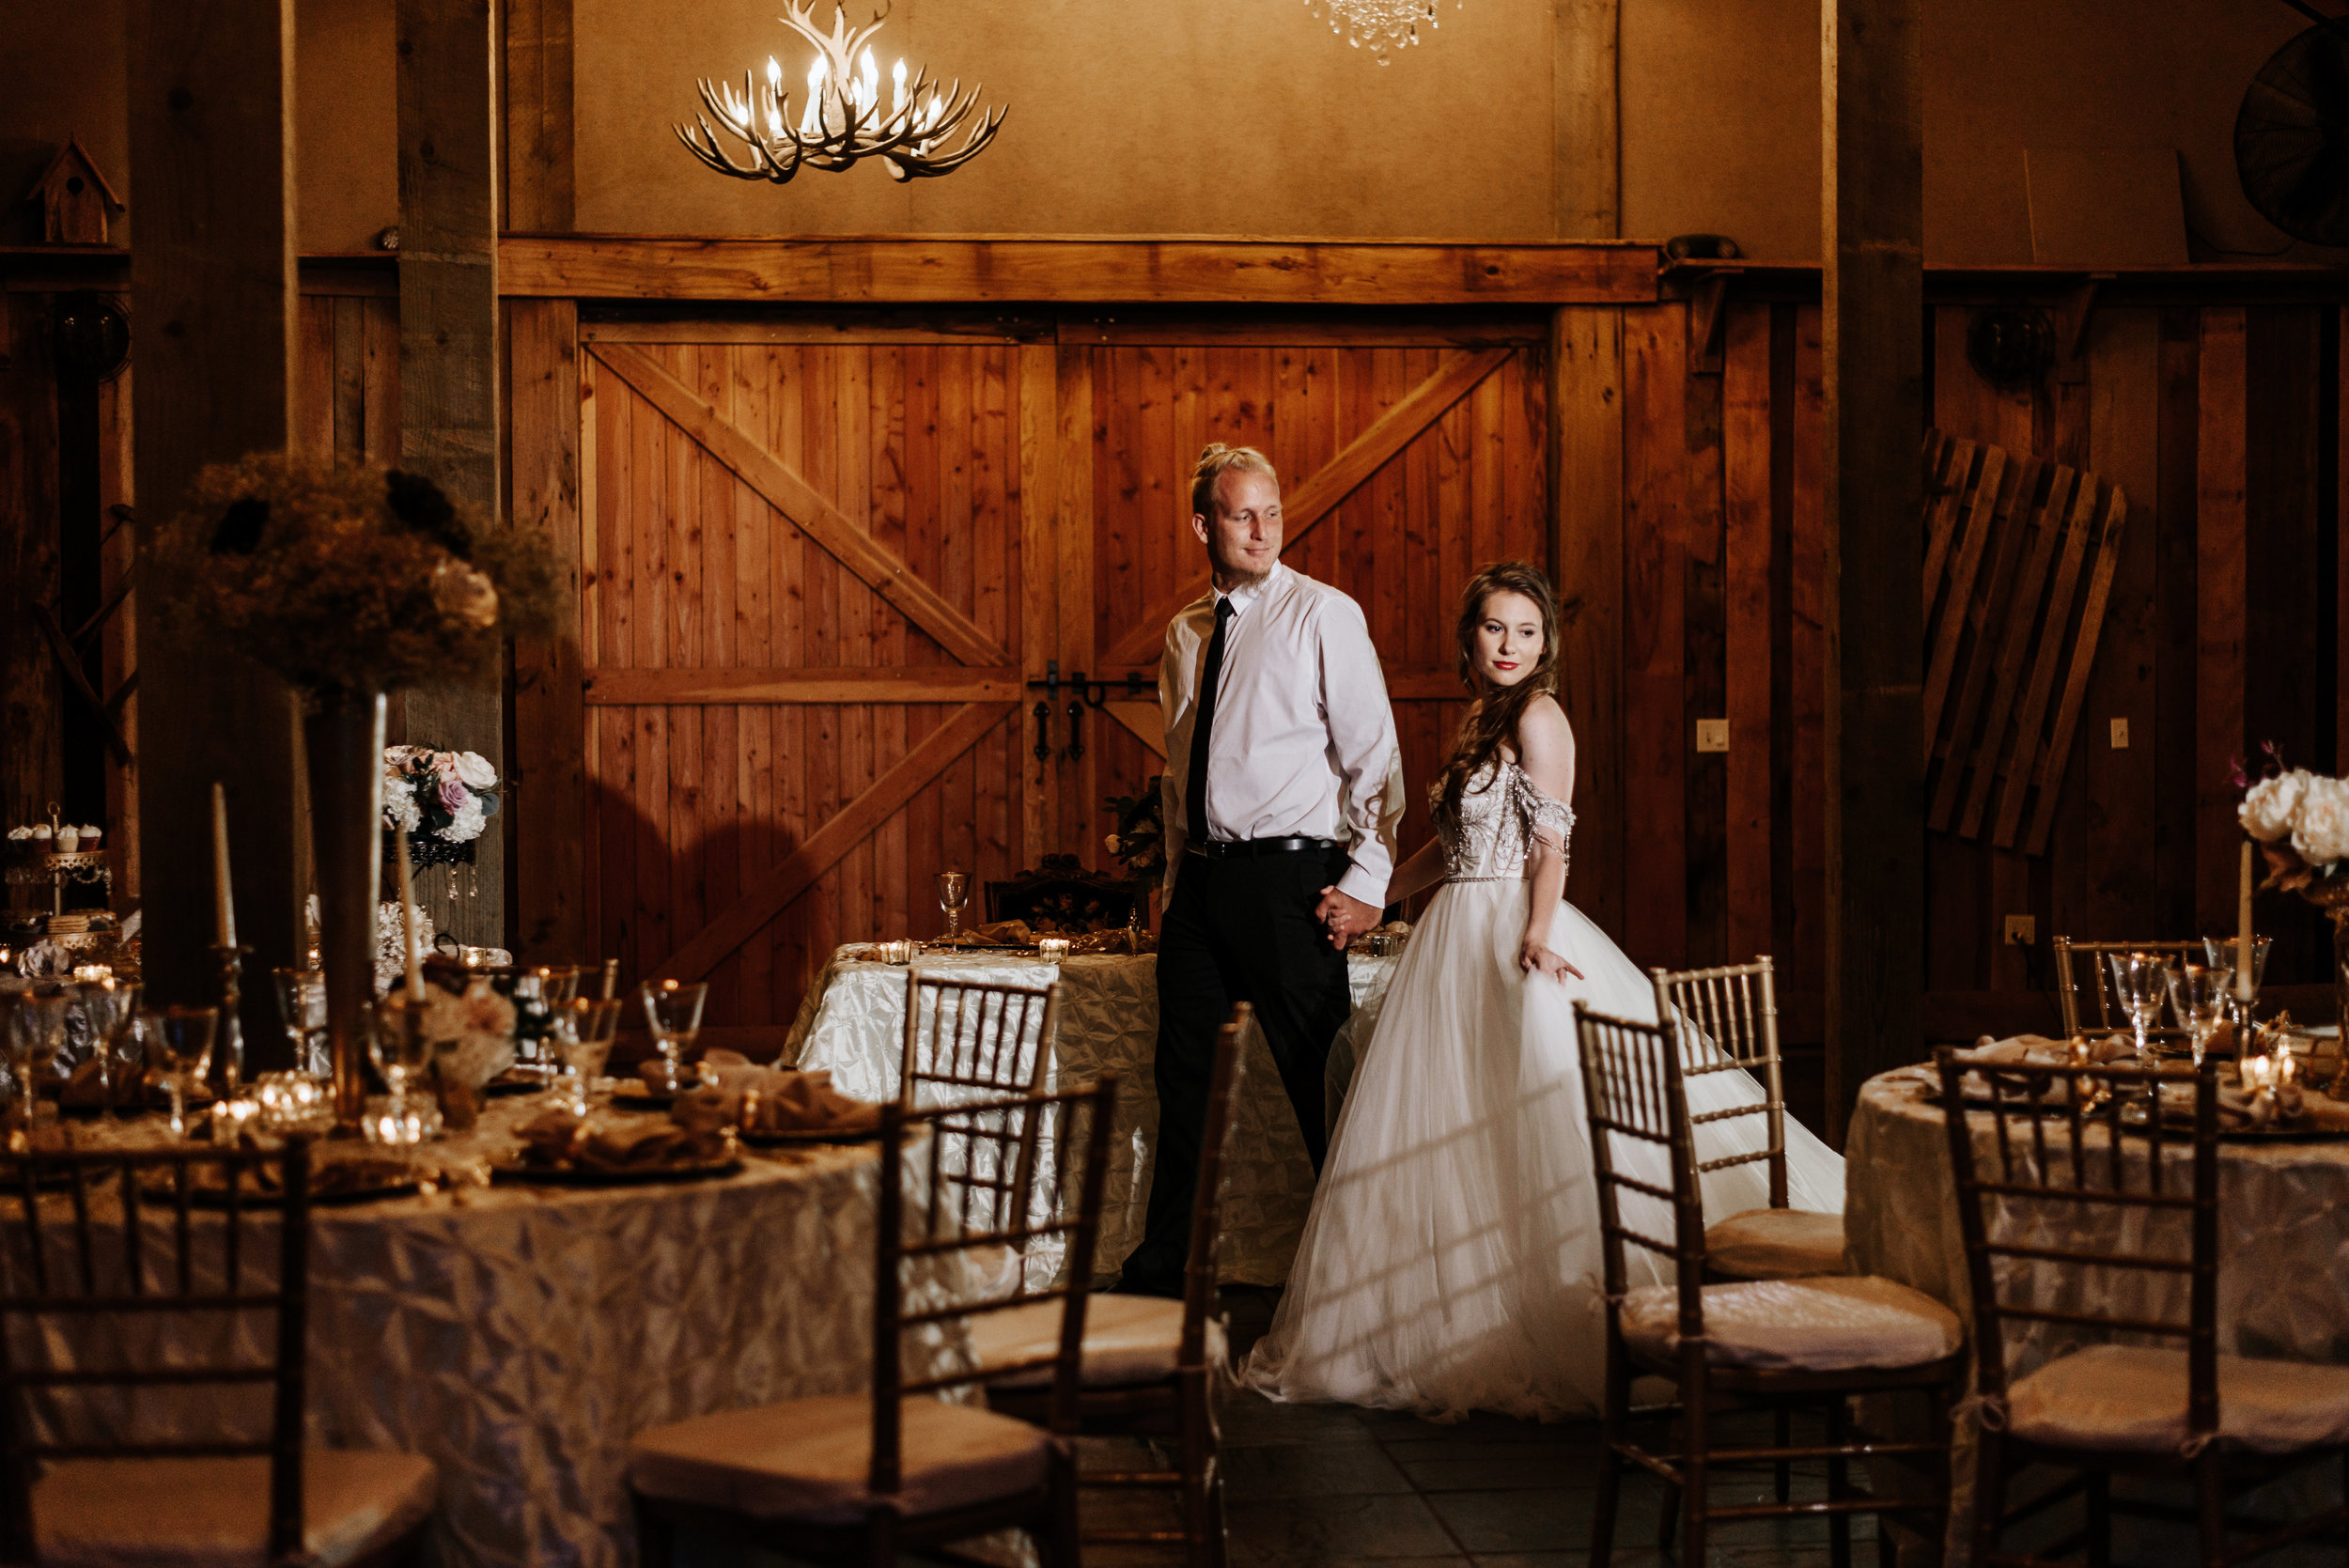 Grant-Station-Styled-Shoot-Whimsical-Moody-Fairytale-Wedding-Photography-by-V-3006.jpg